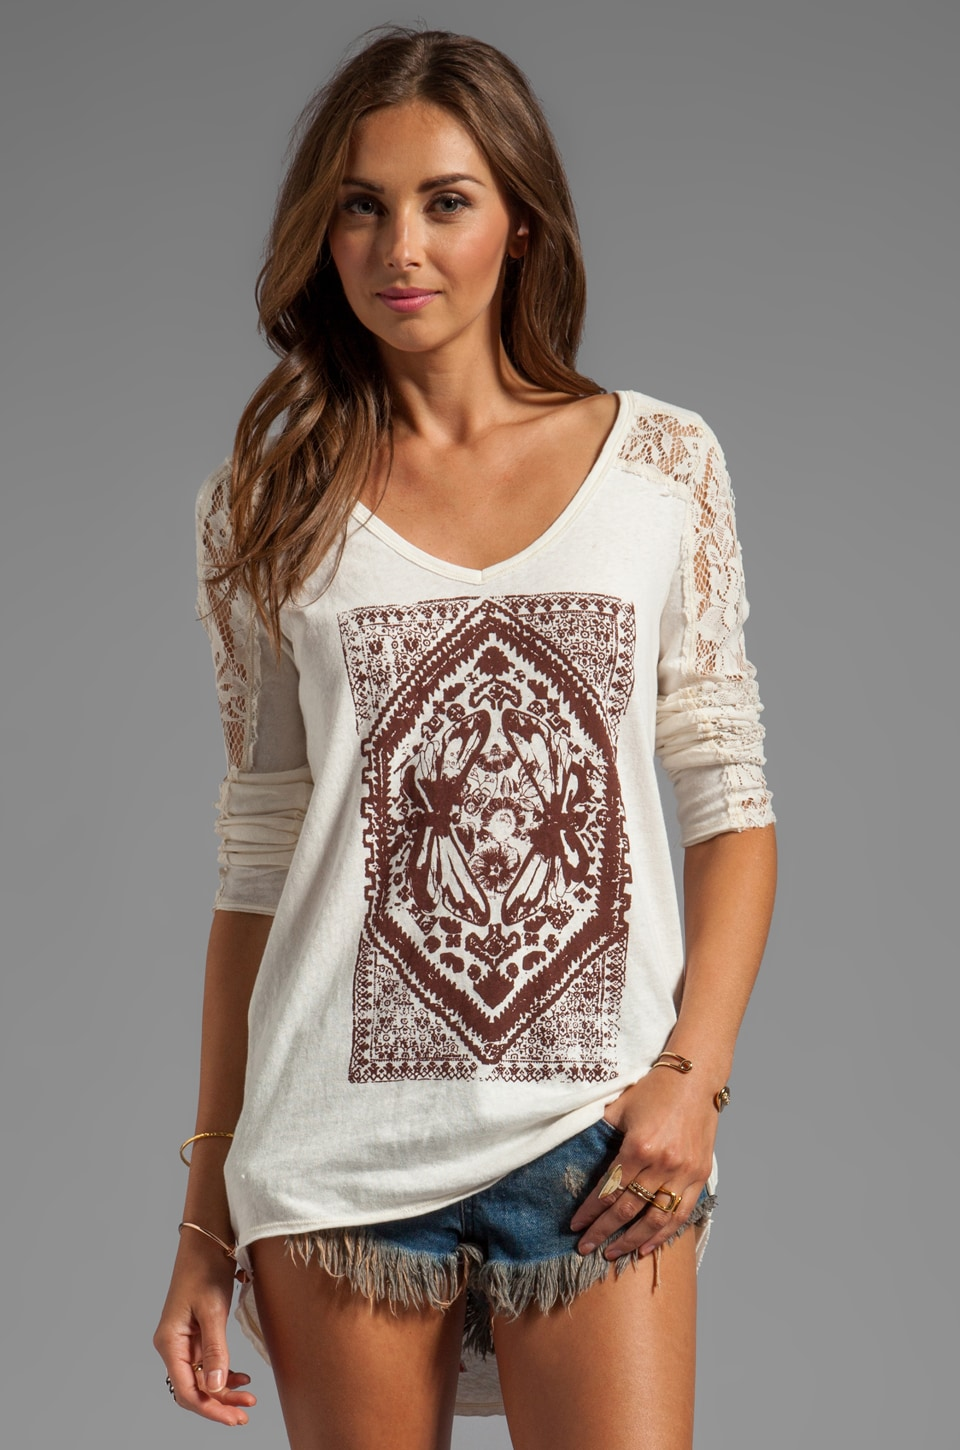 Free People Lady in Lace Graphic Top in Ivory Combo